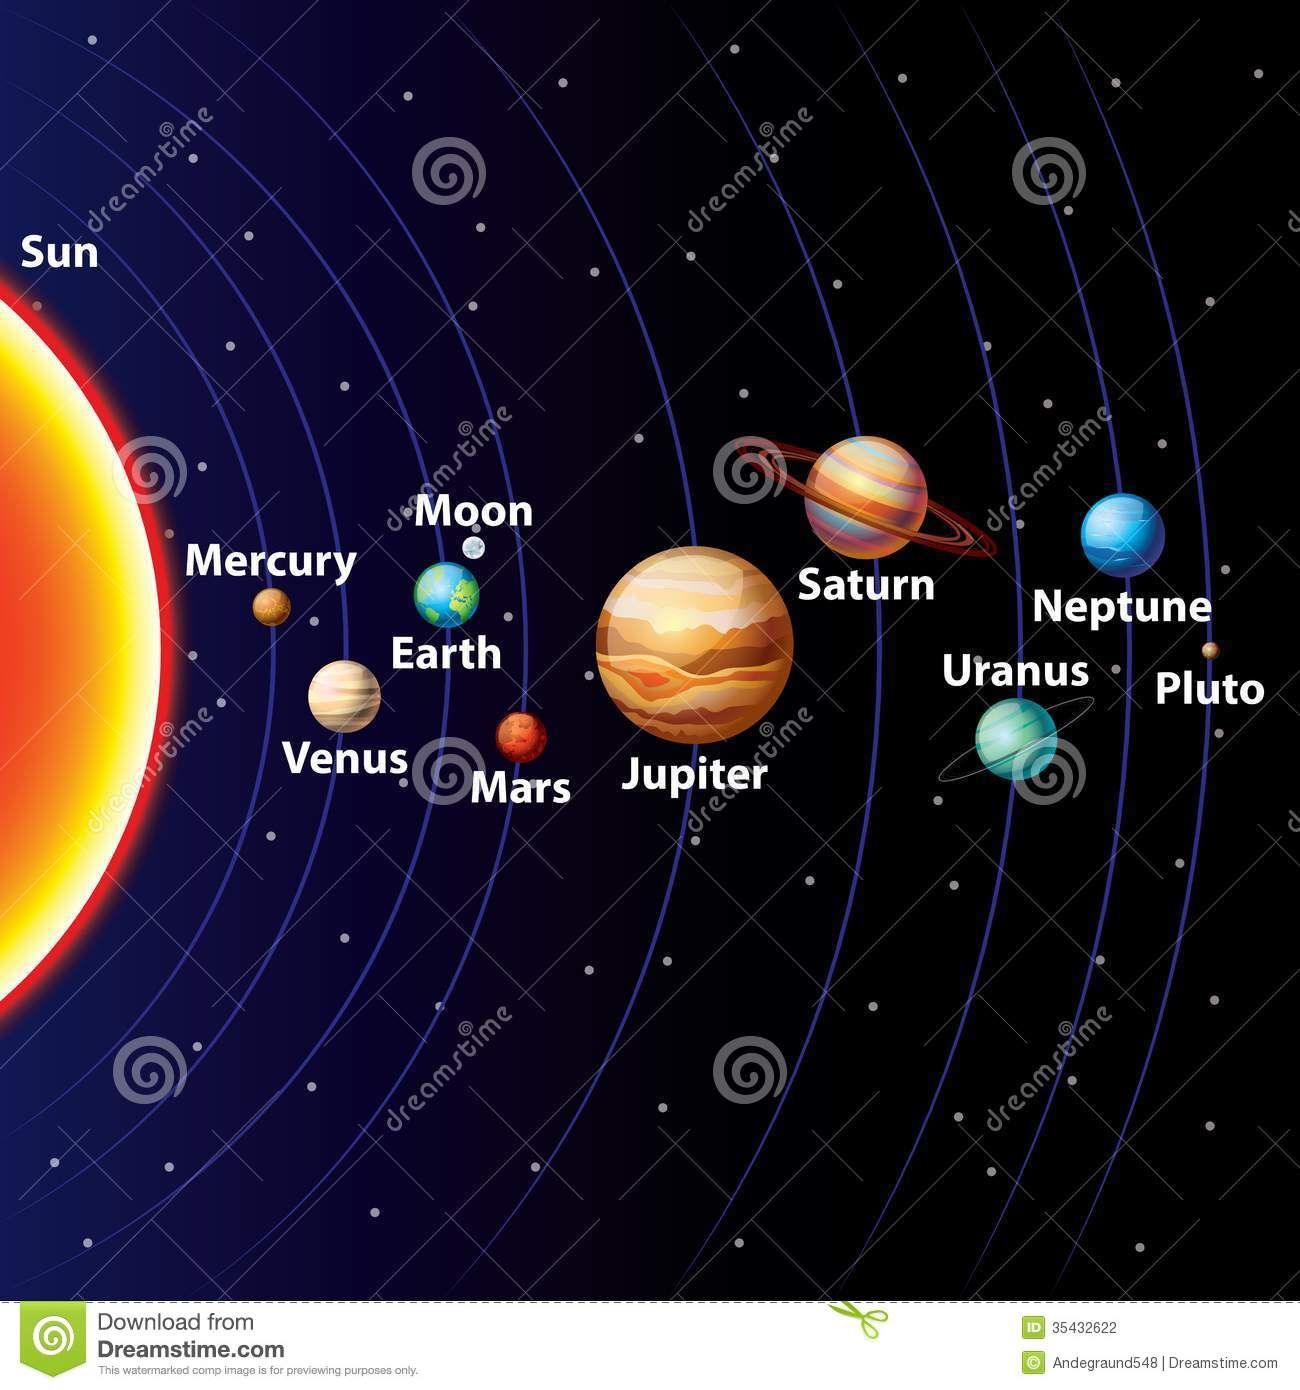 solar-system-pictures-and-information.jpg 1,300×1,390 ...